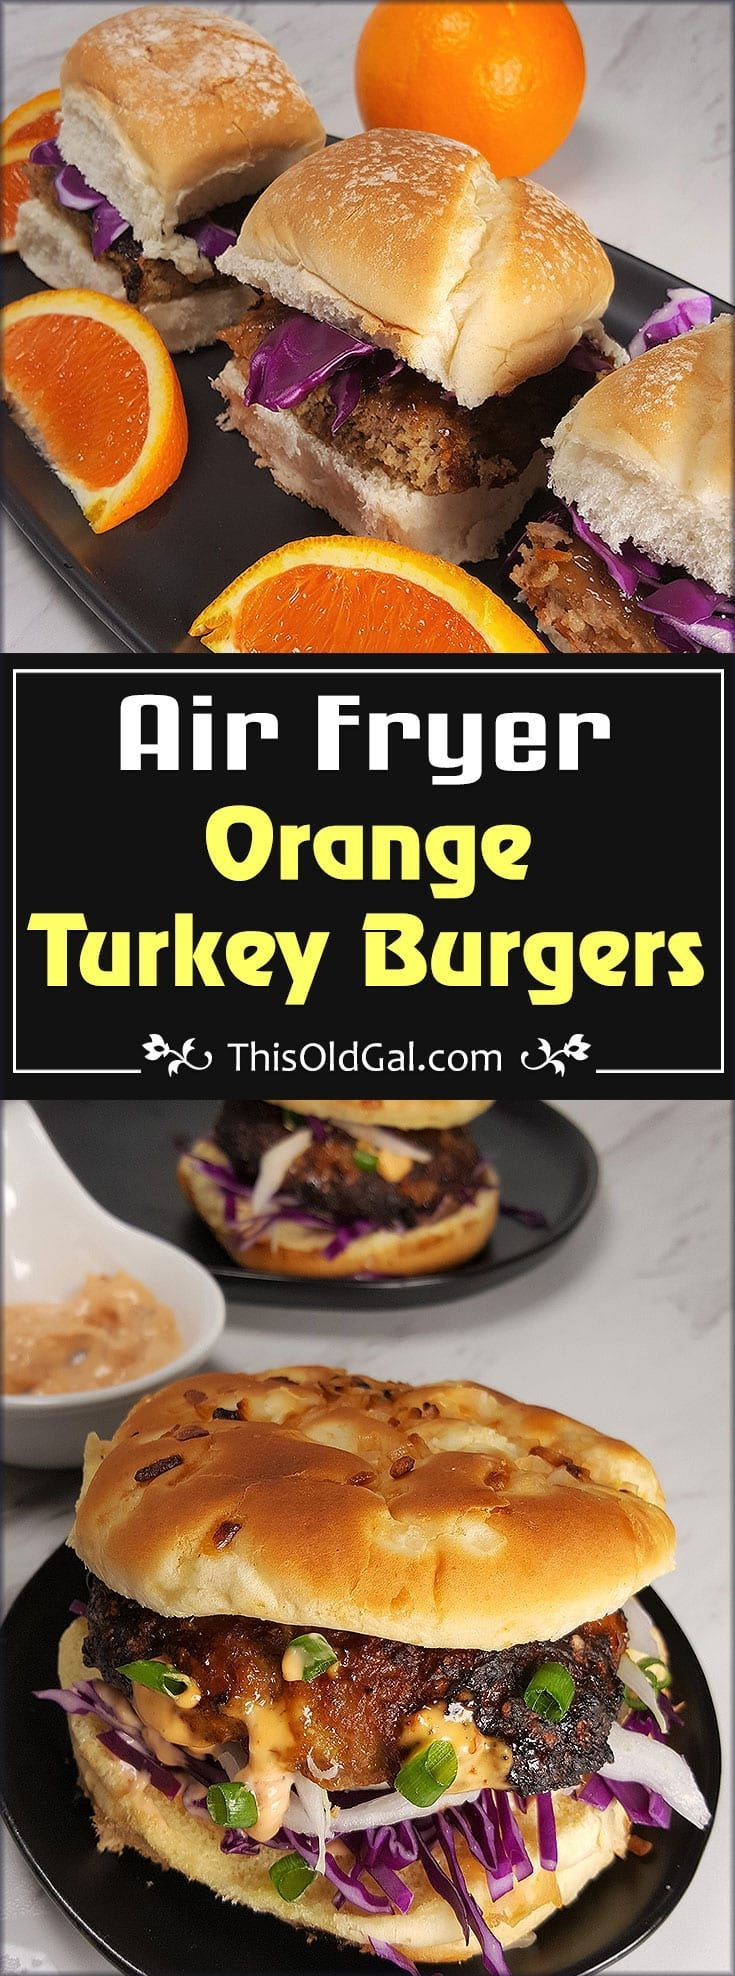 Air Fryer Orange Turkey Burgers with an Asian flair are